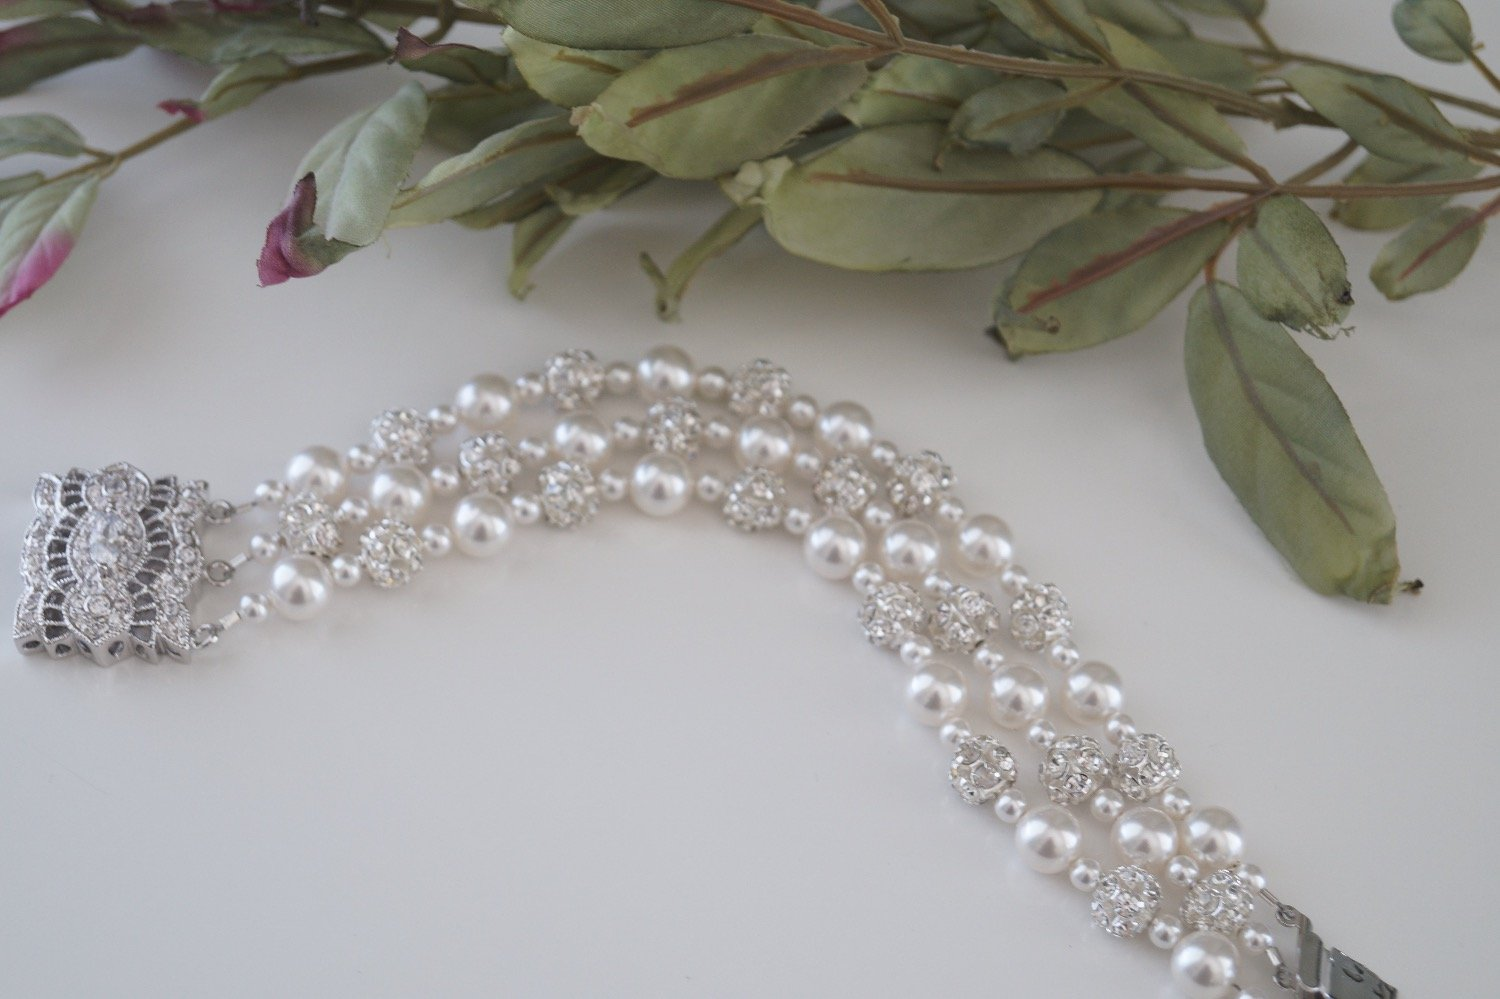 Three strand pearl bracelet wedding jewelry with pearls and crystals - Clairesbridal - 4